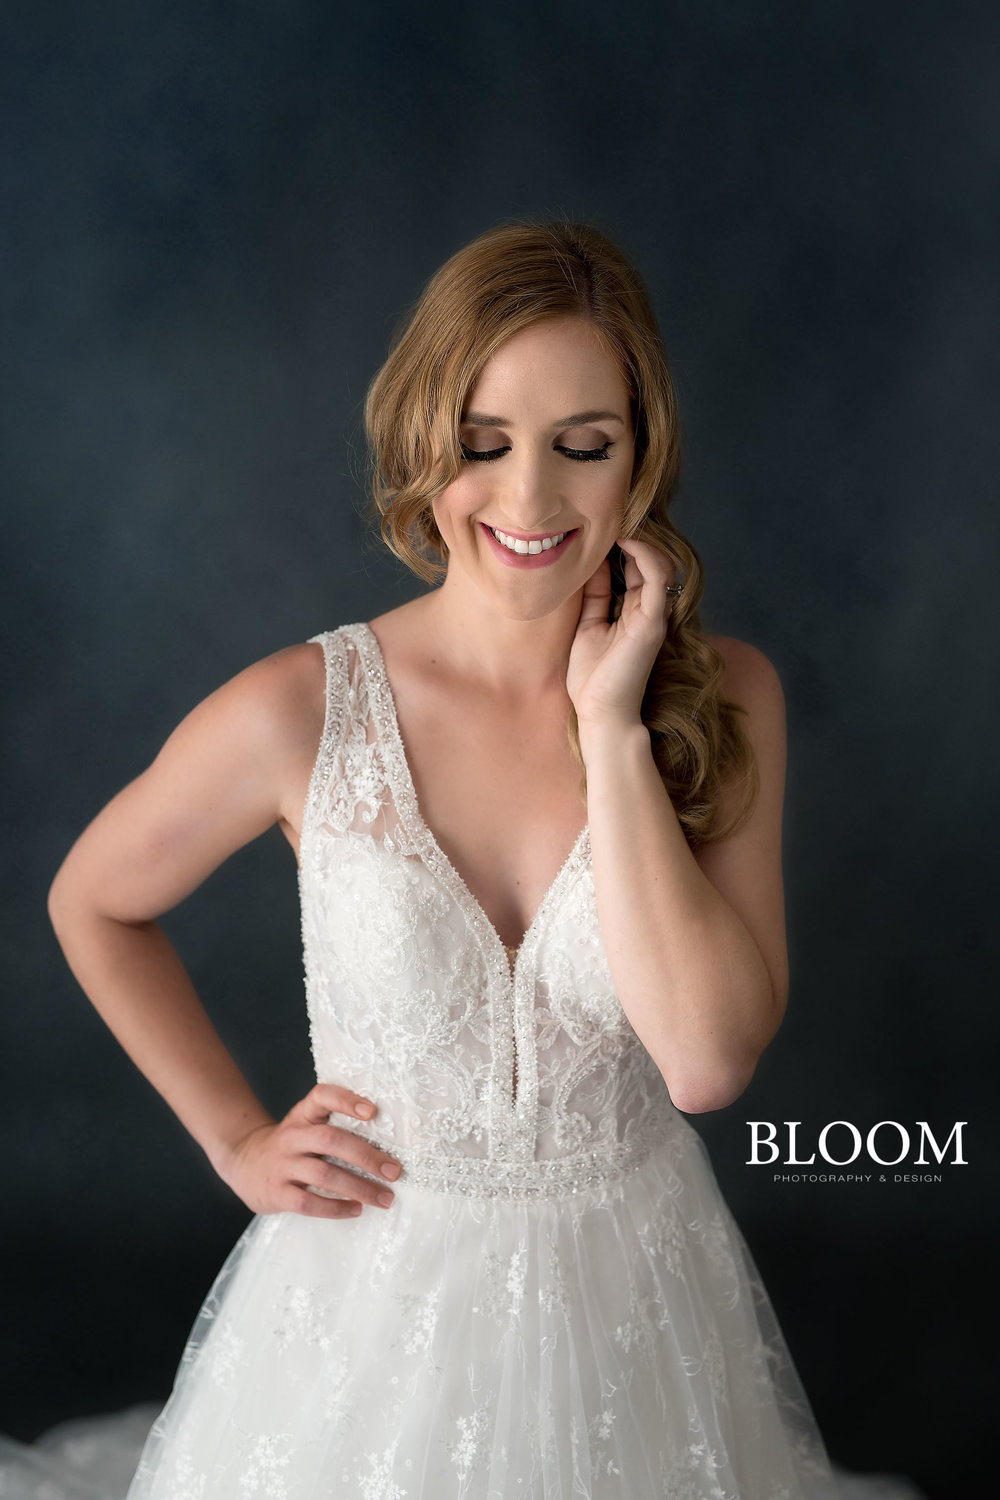 wedding_bridal_san_antonio_photographer_texas_bloom_033017_3861.jpg